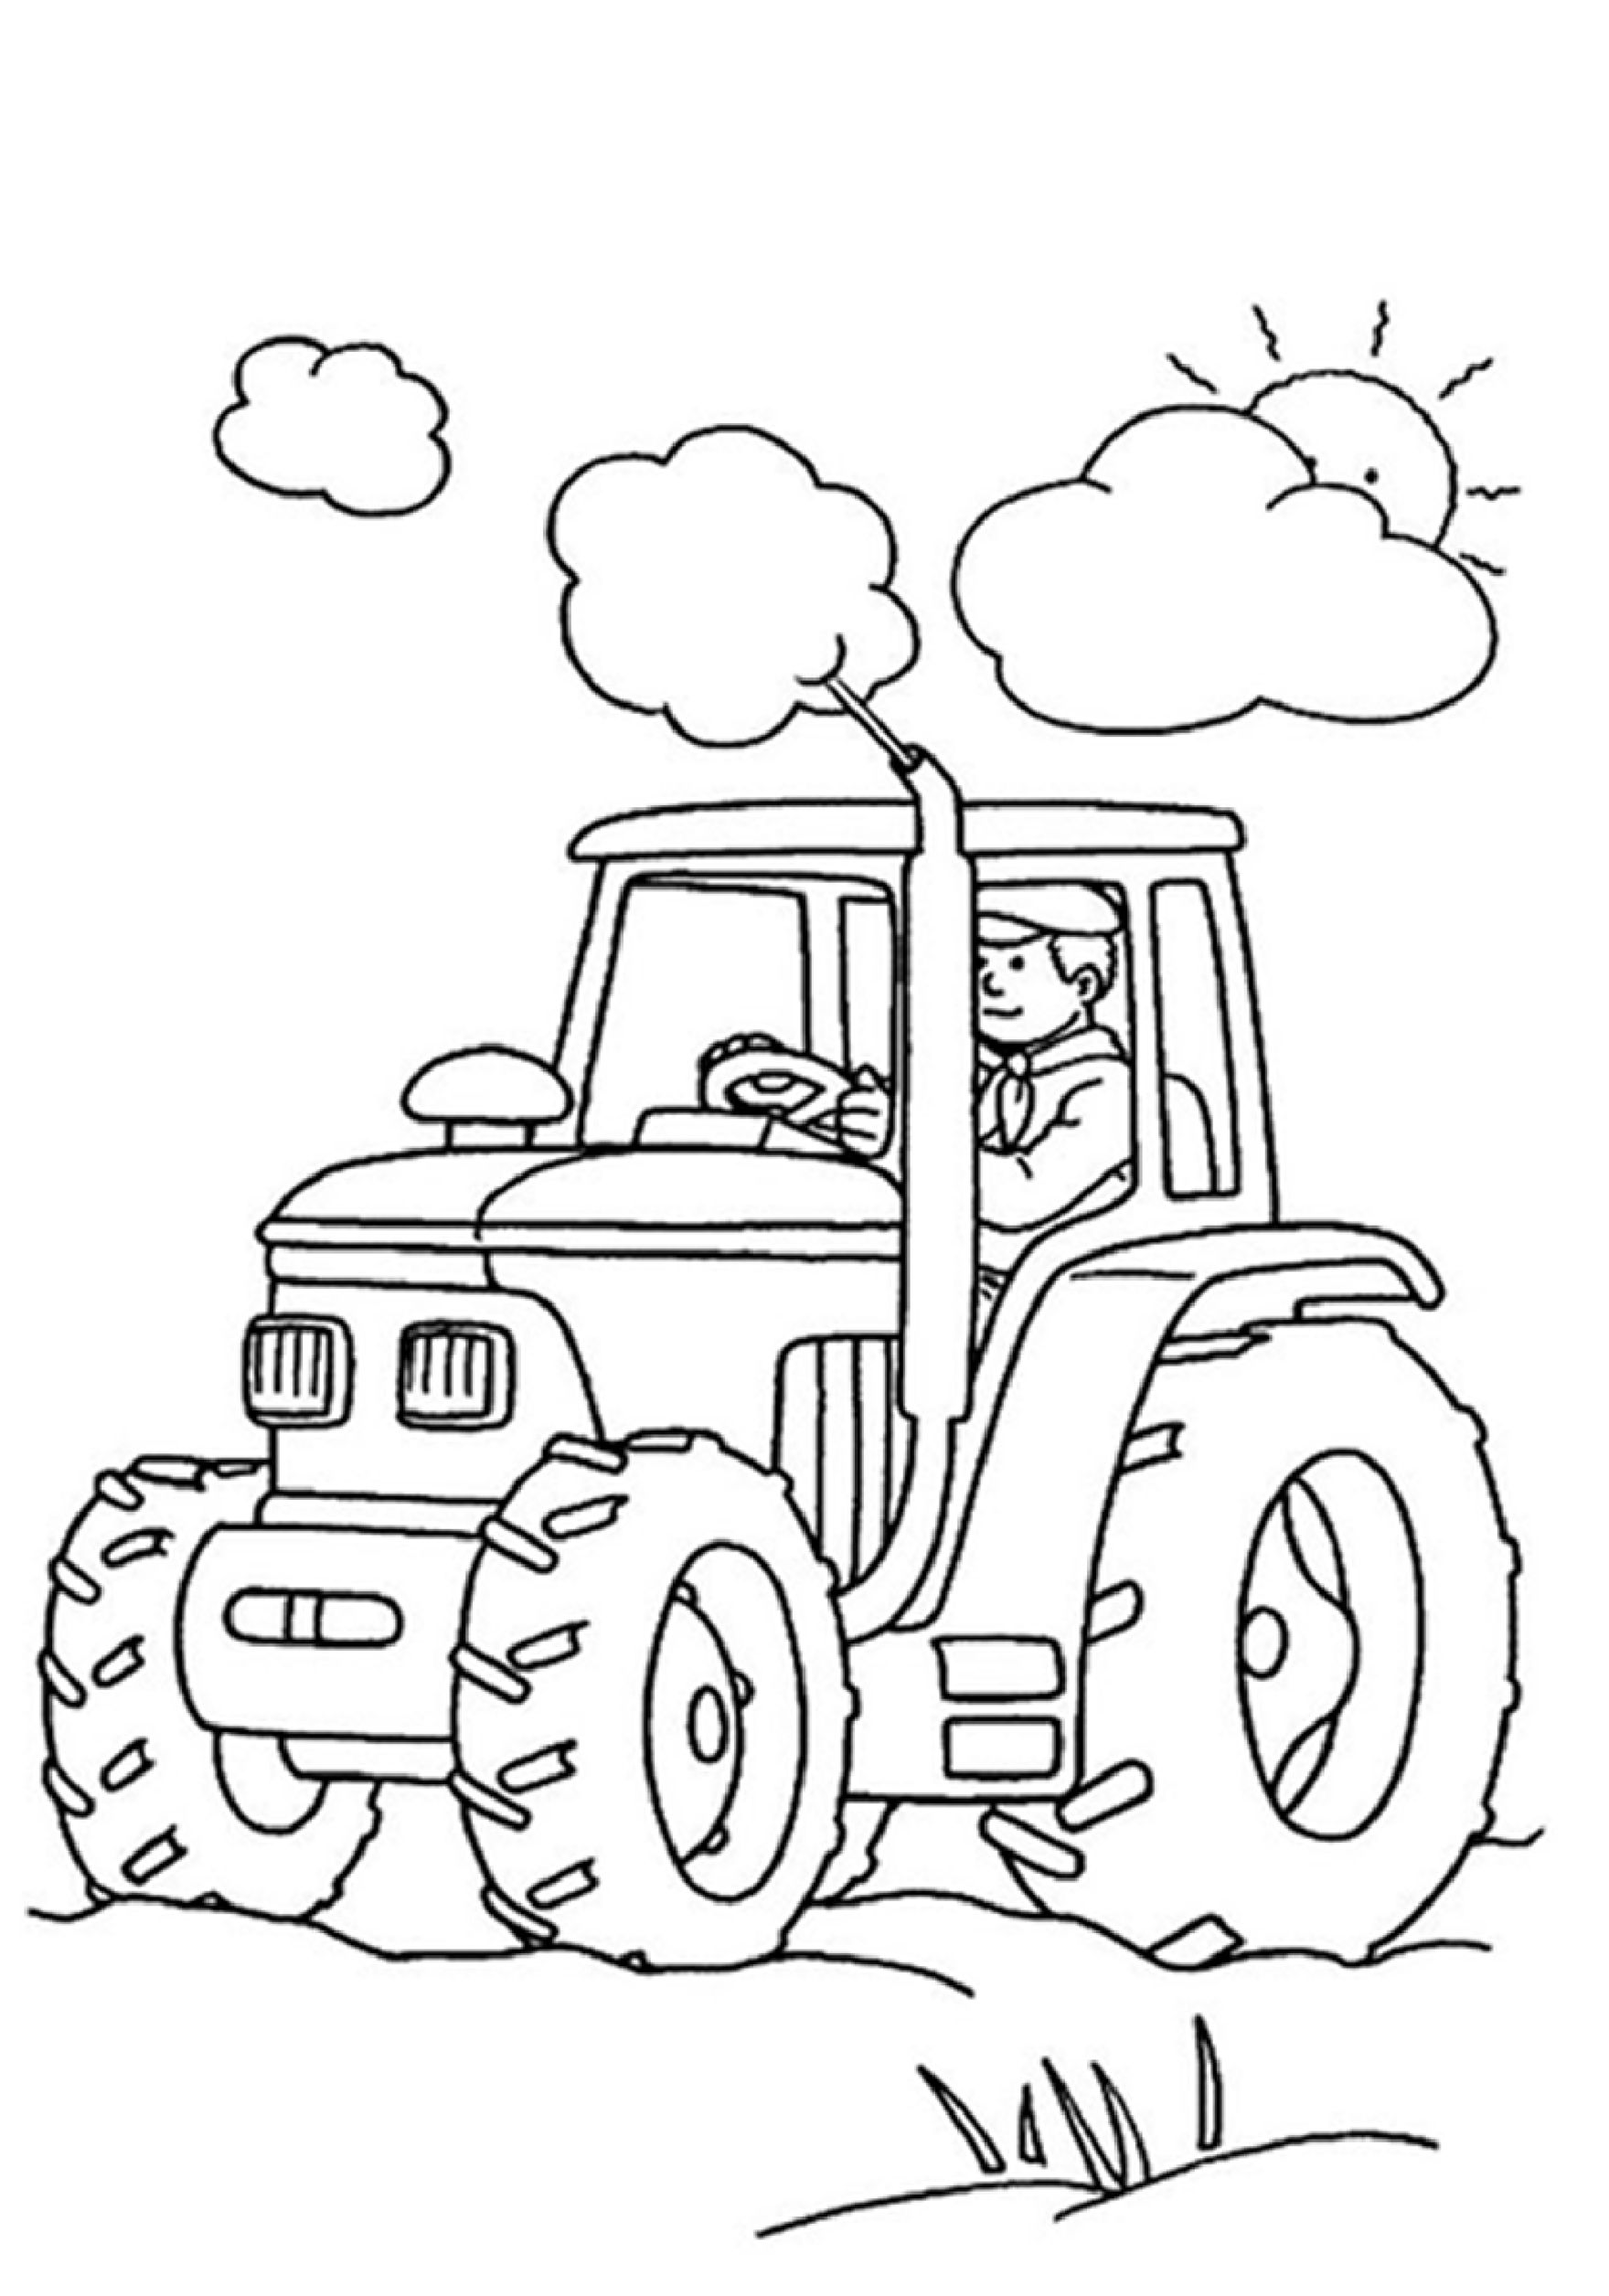 Coloring Pages For Kindergarten Pdf